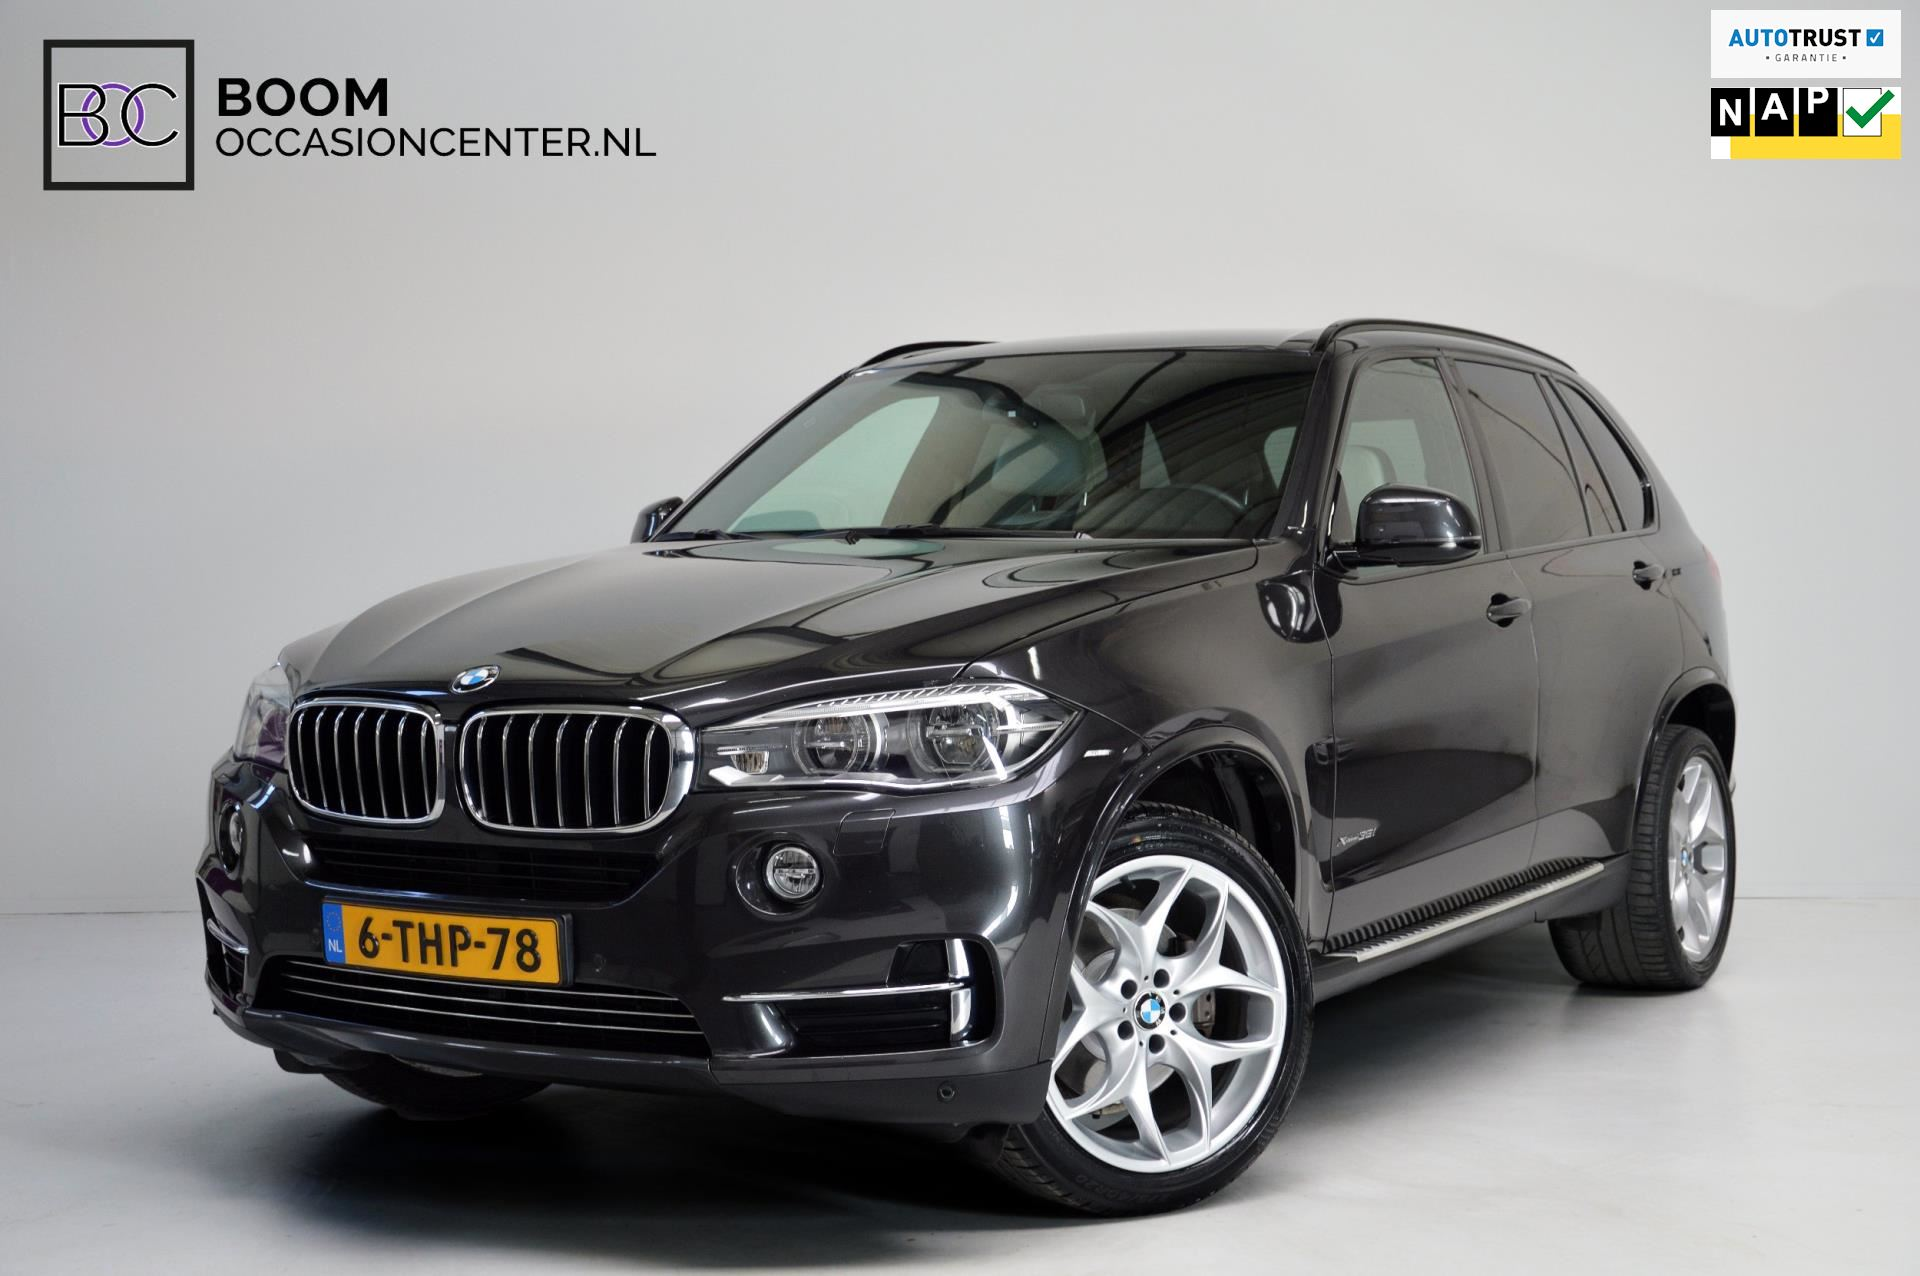 BMW X5 occasion - BoomOccasionCenter.nl